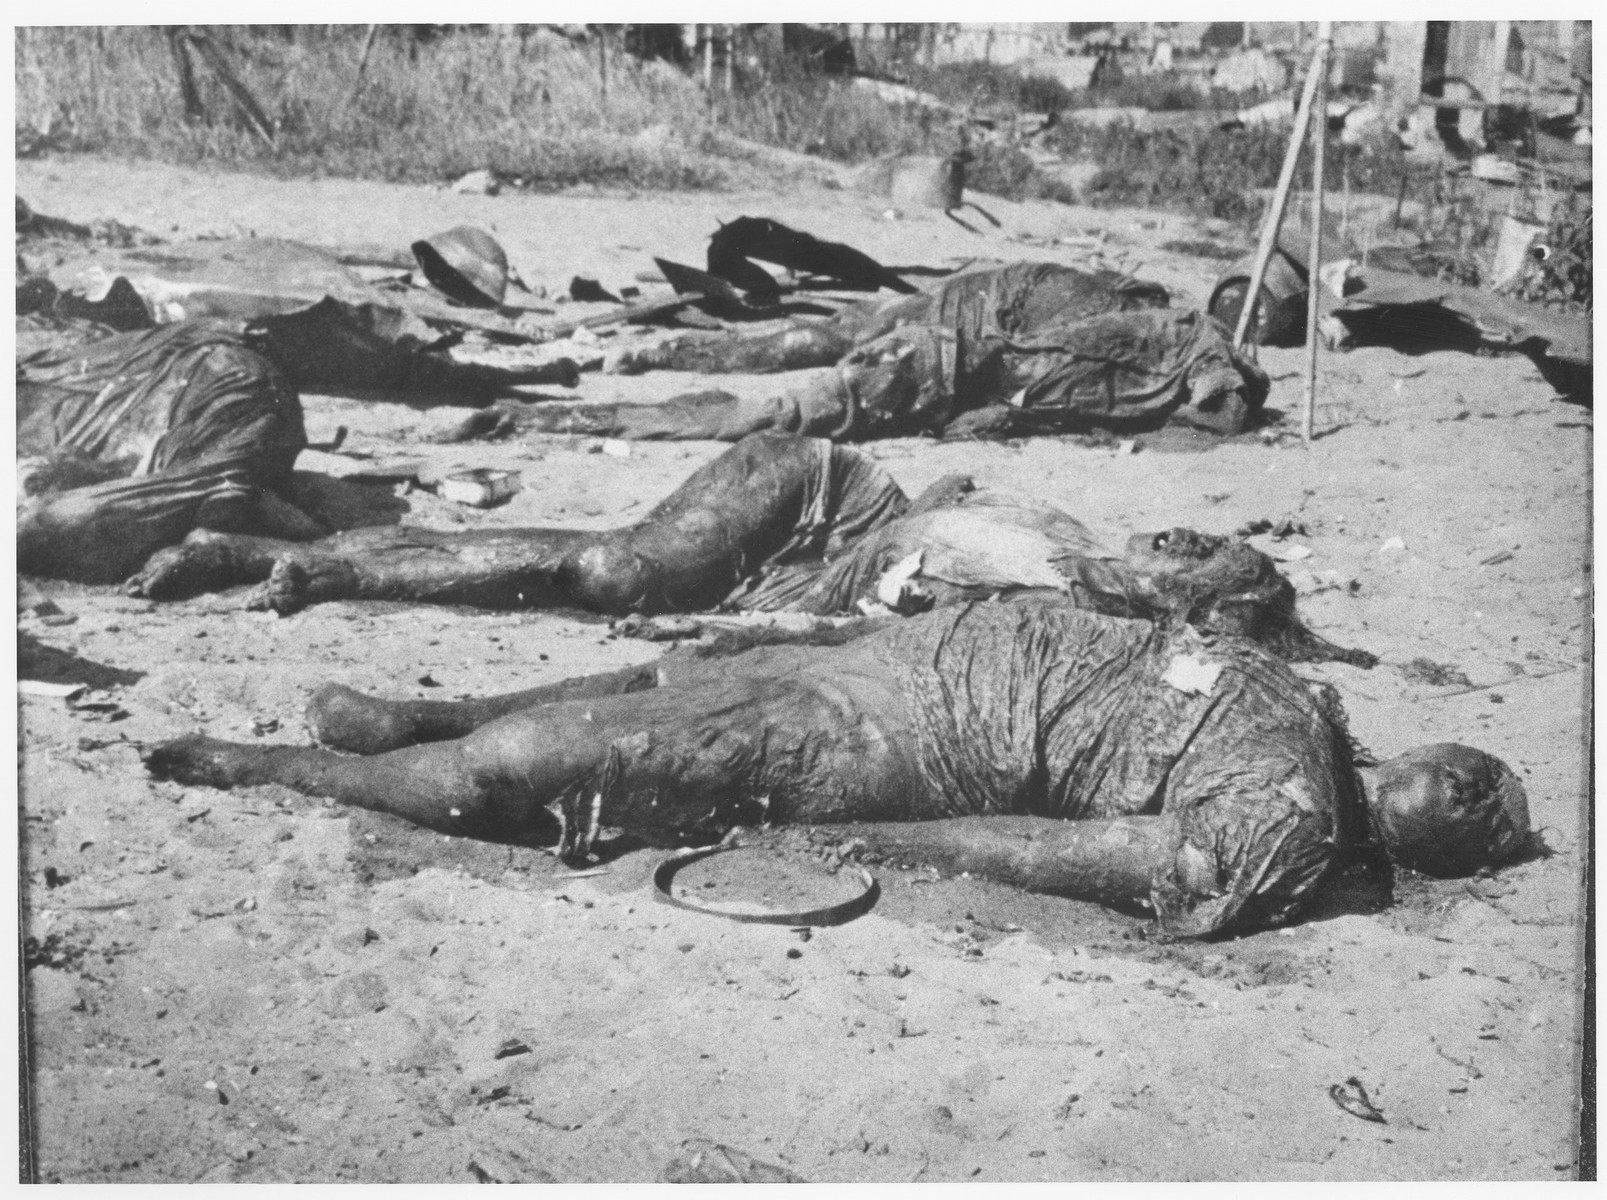 The charred remains of Jews who were killed during the liquidation of the Kovno ghetto.